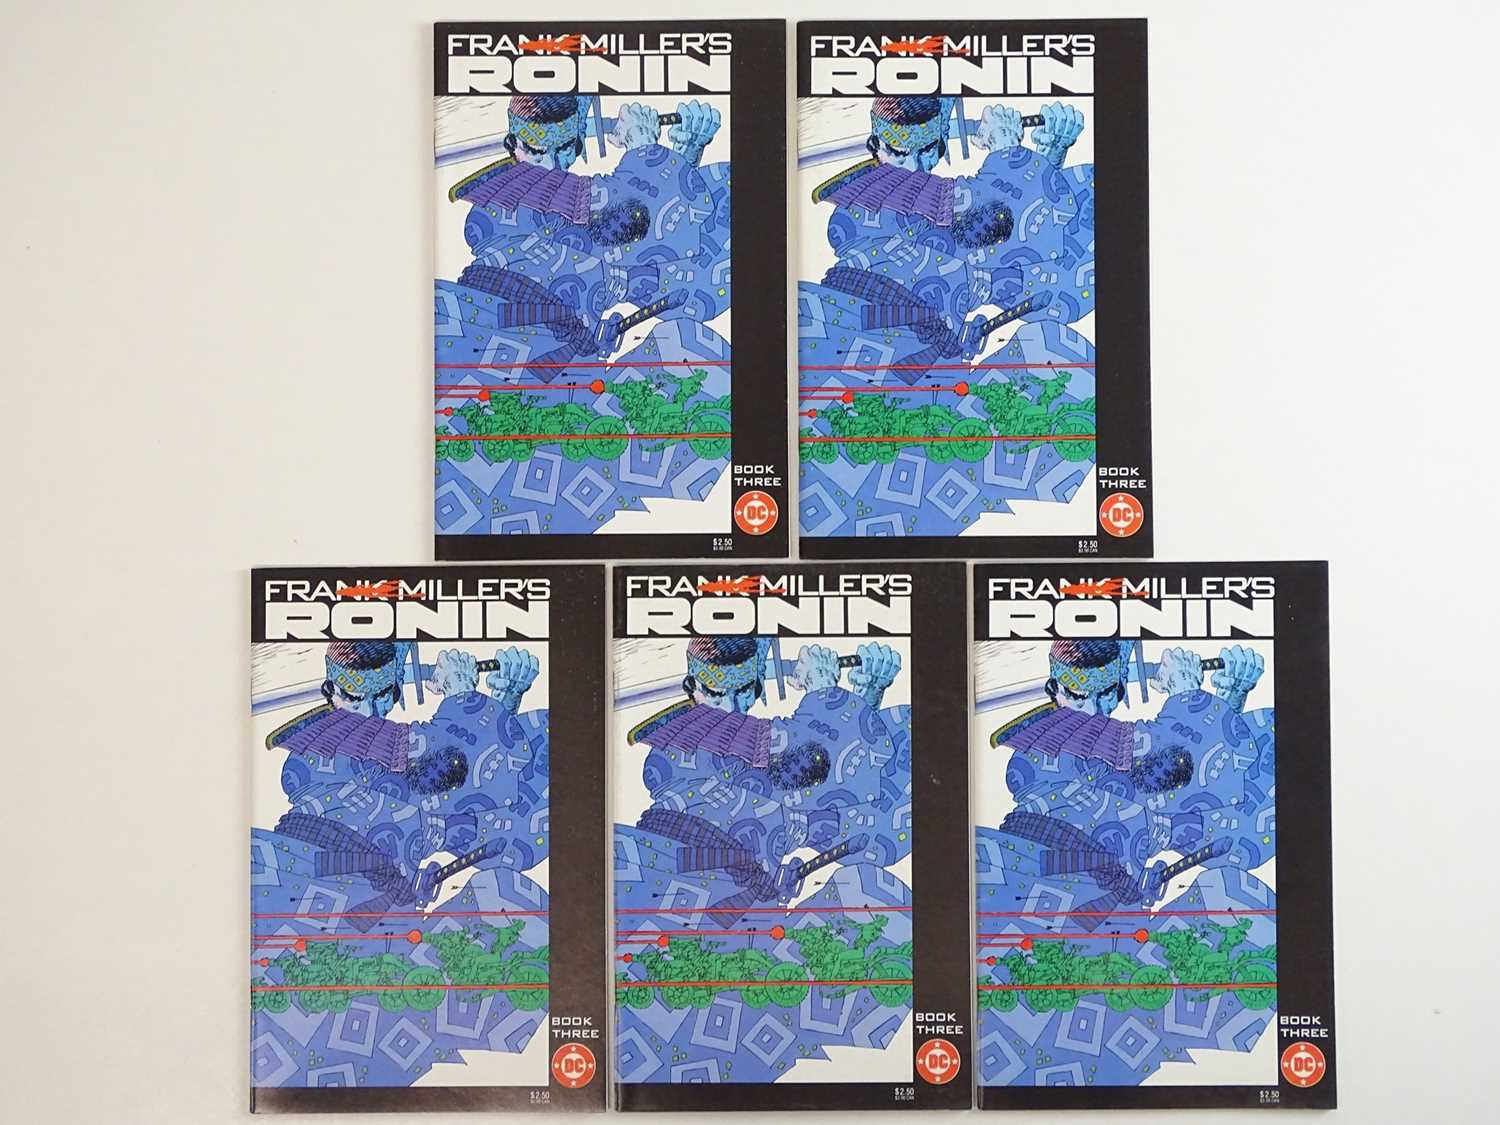 RONIN #3 - (5 in Lot) - (1983 - DC) - First Printing - Five (5) #3 issues for the Frank Miller